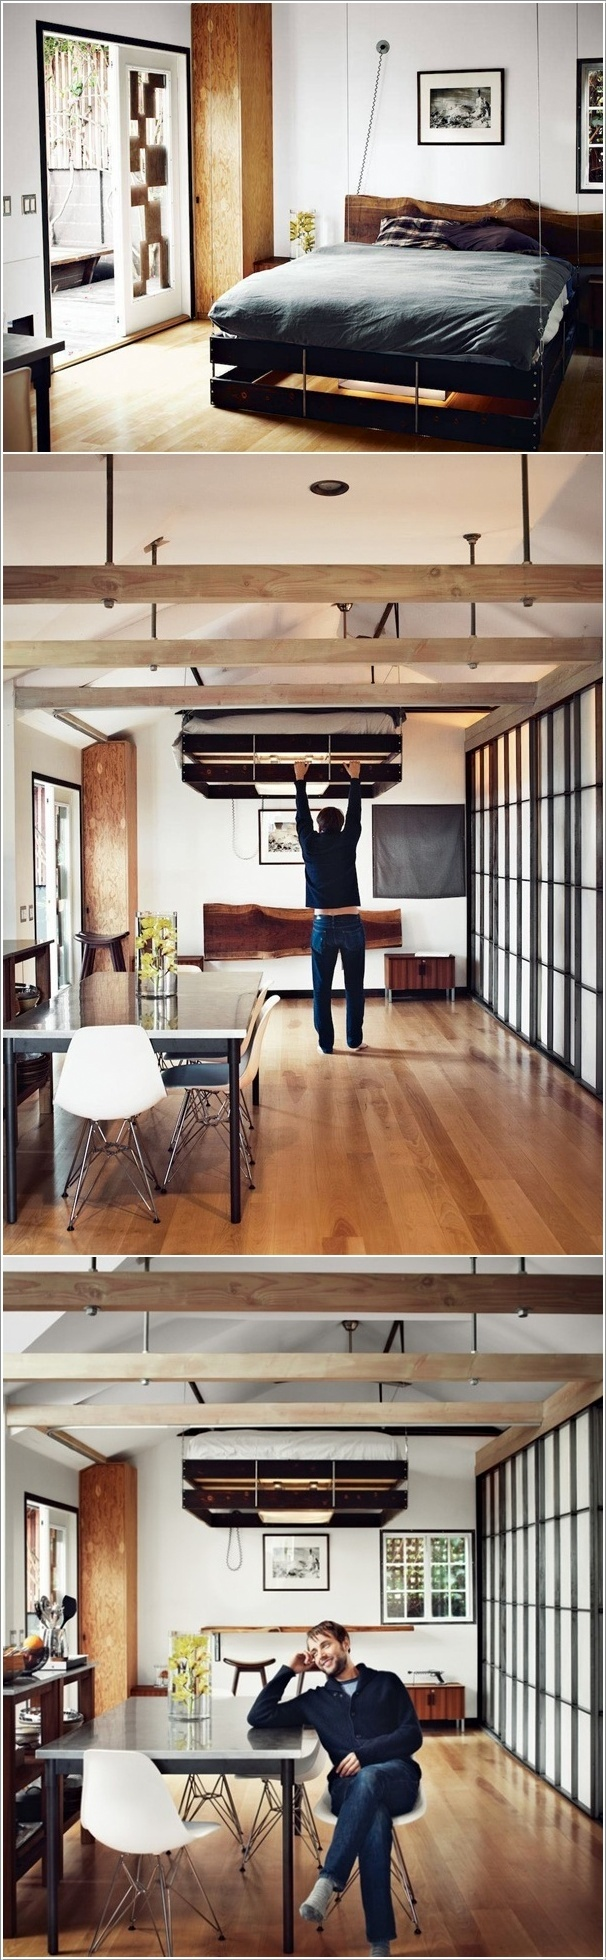 Retractable Bed That Lets You Use the Space It Occupies During the Day